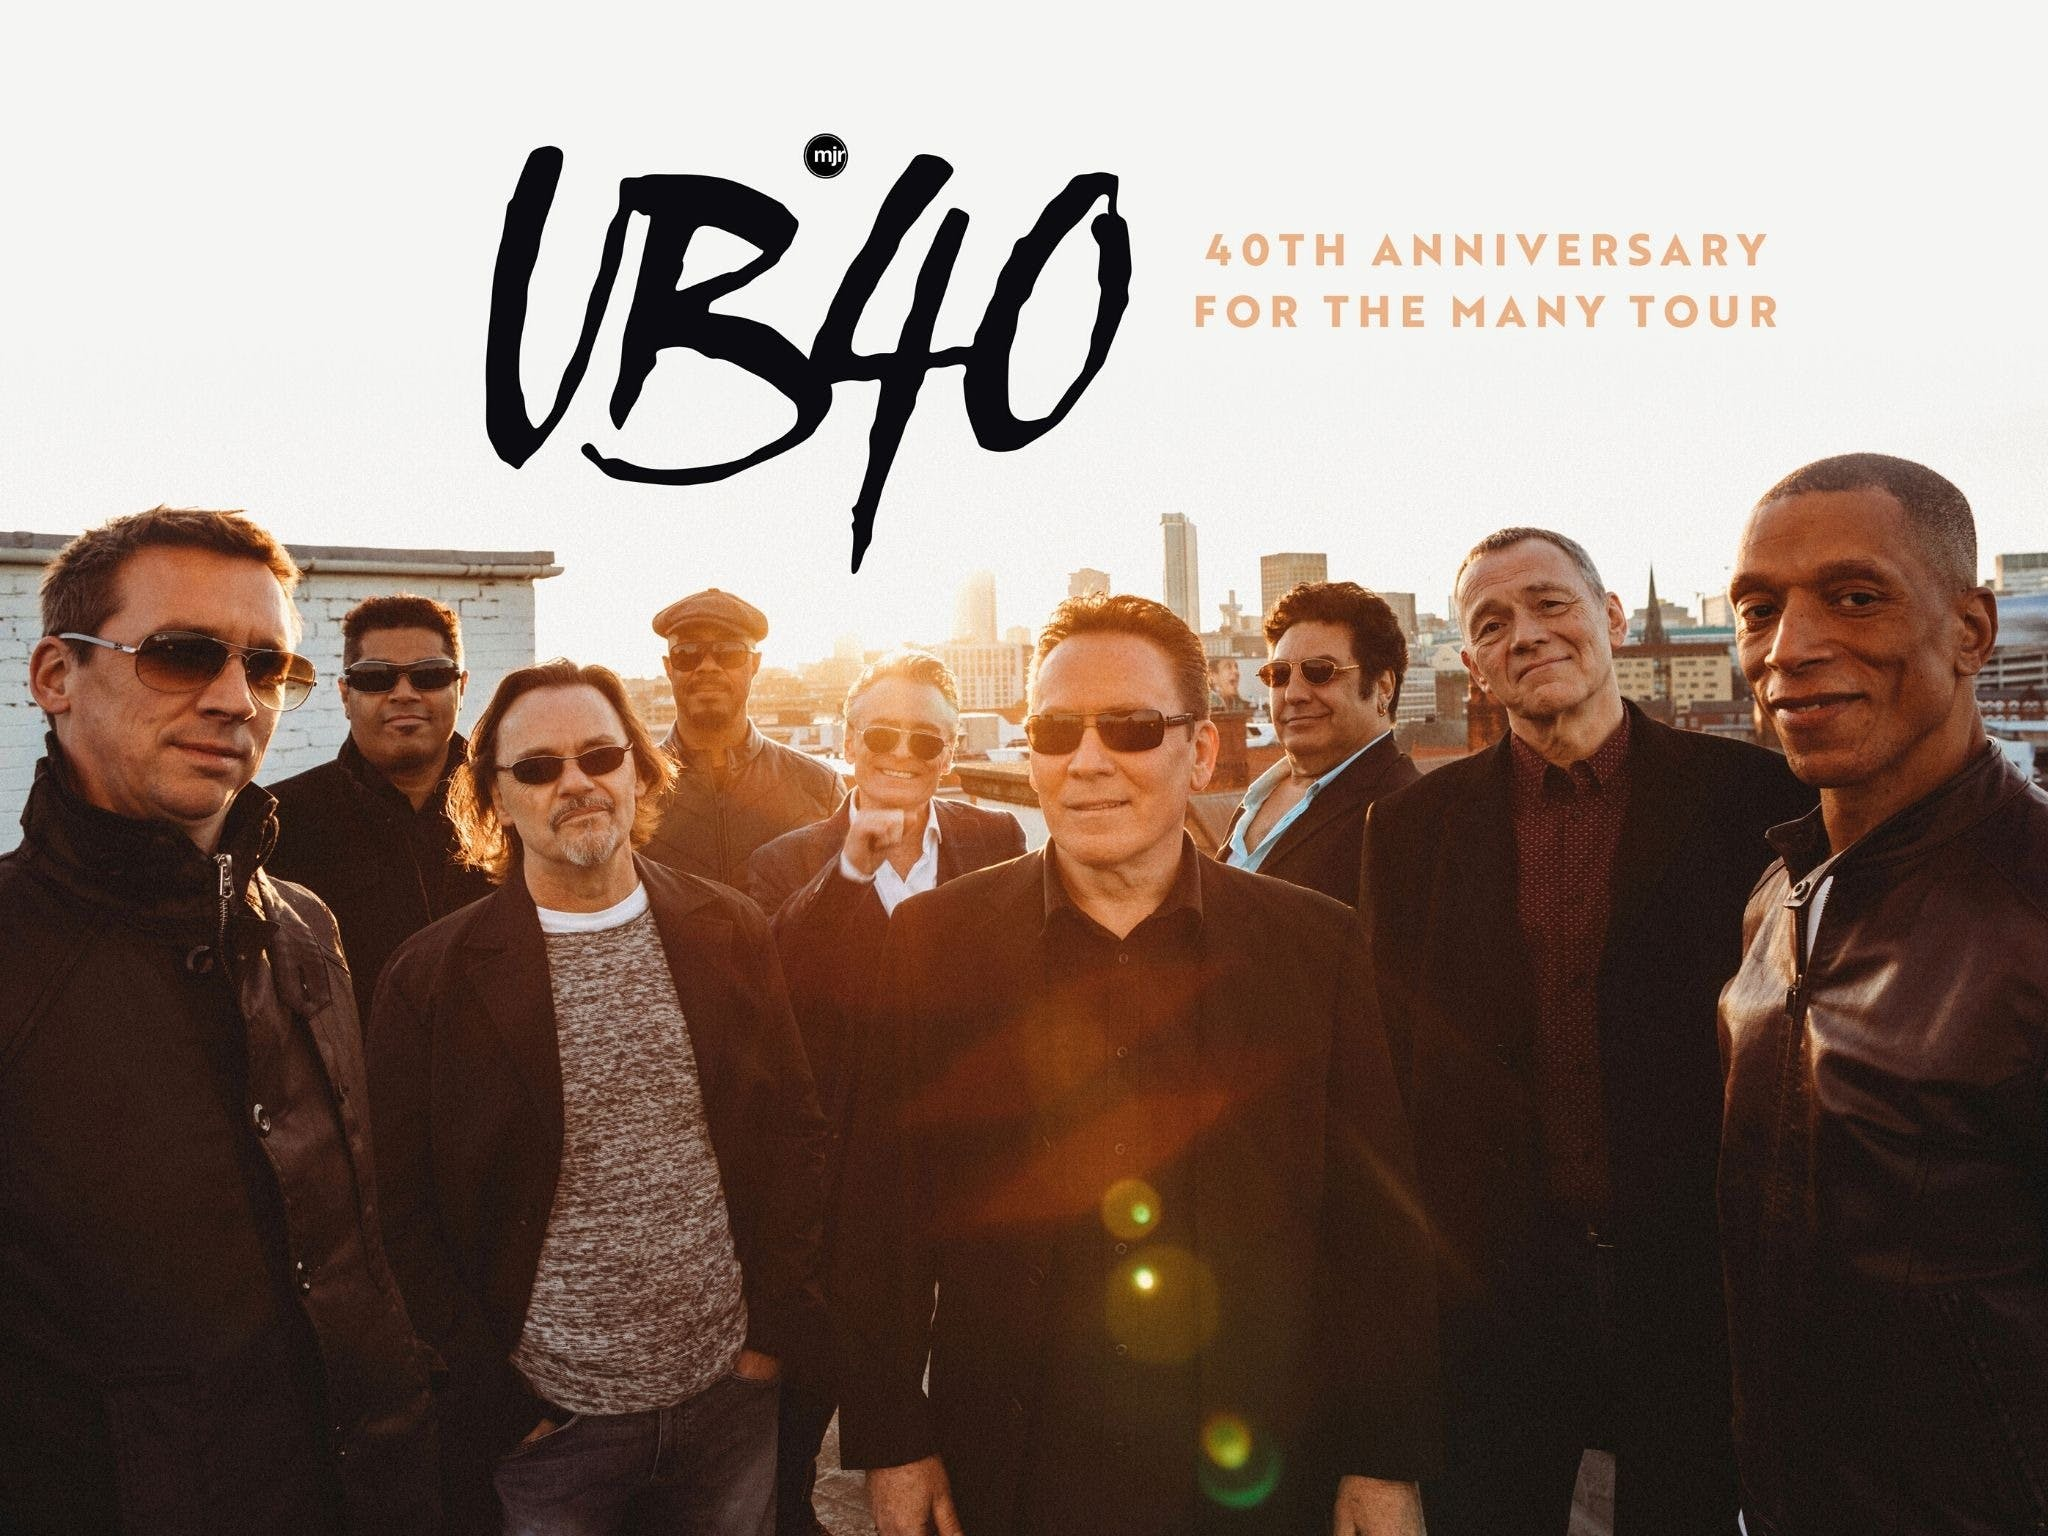 UB40 40th Anniversary Tour - Accommodation in Brisbane